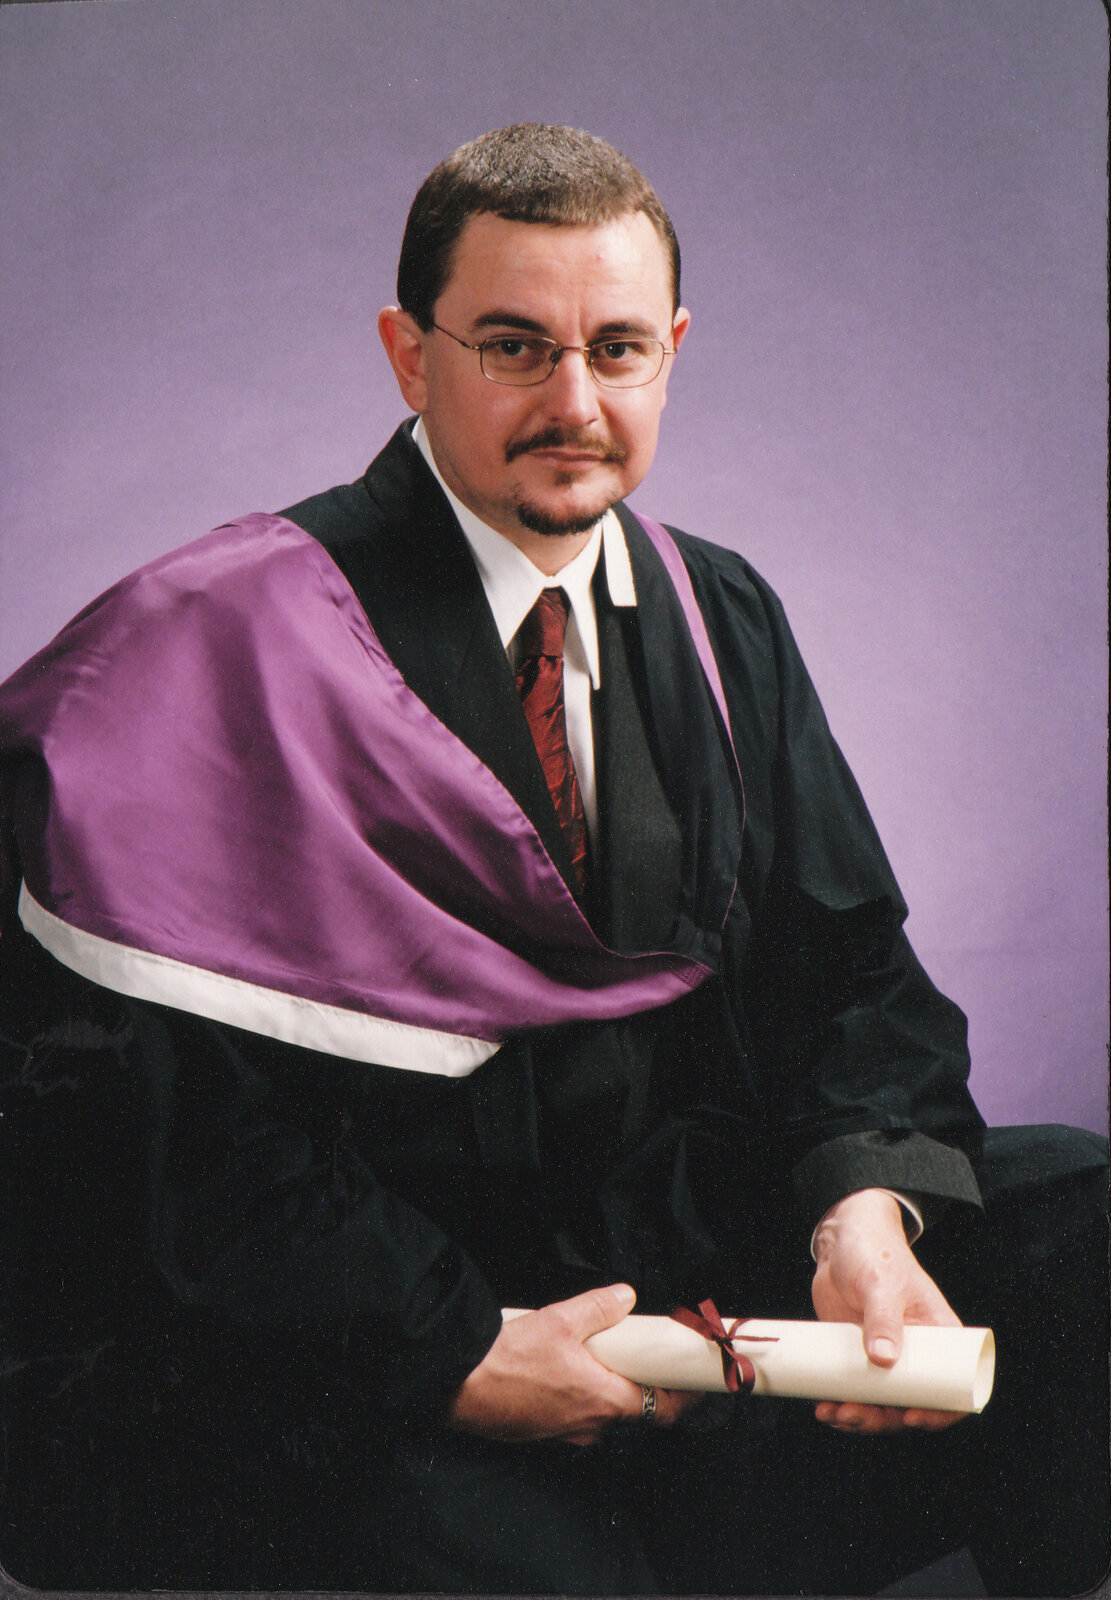 Law Graduation Ceremony March 2000.jpg